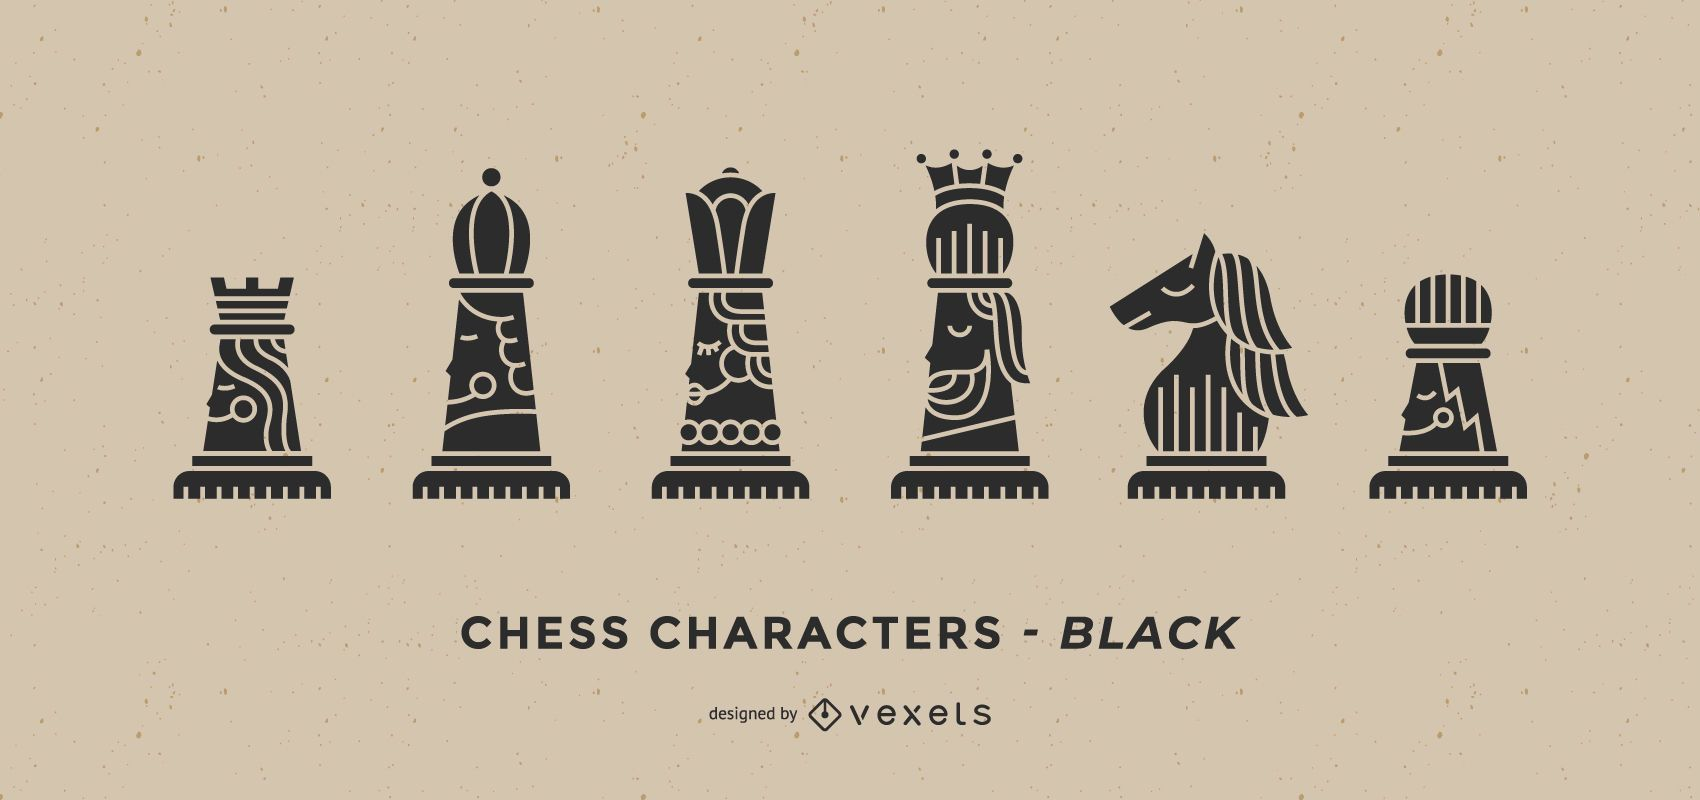 Black chess characters set